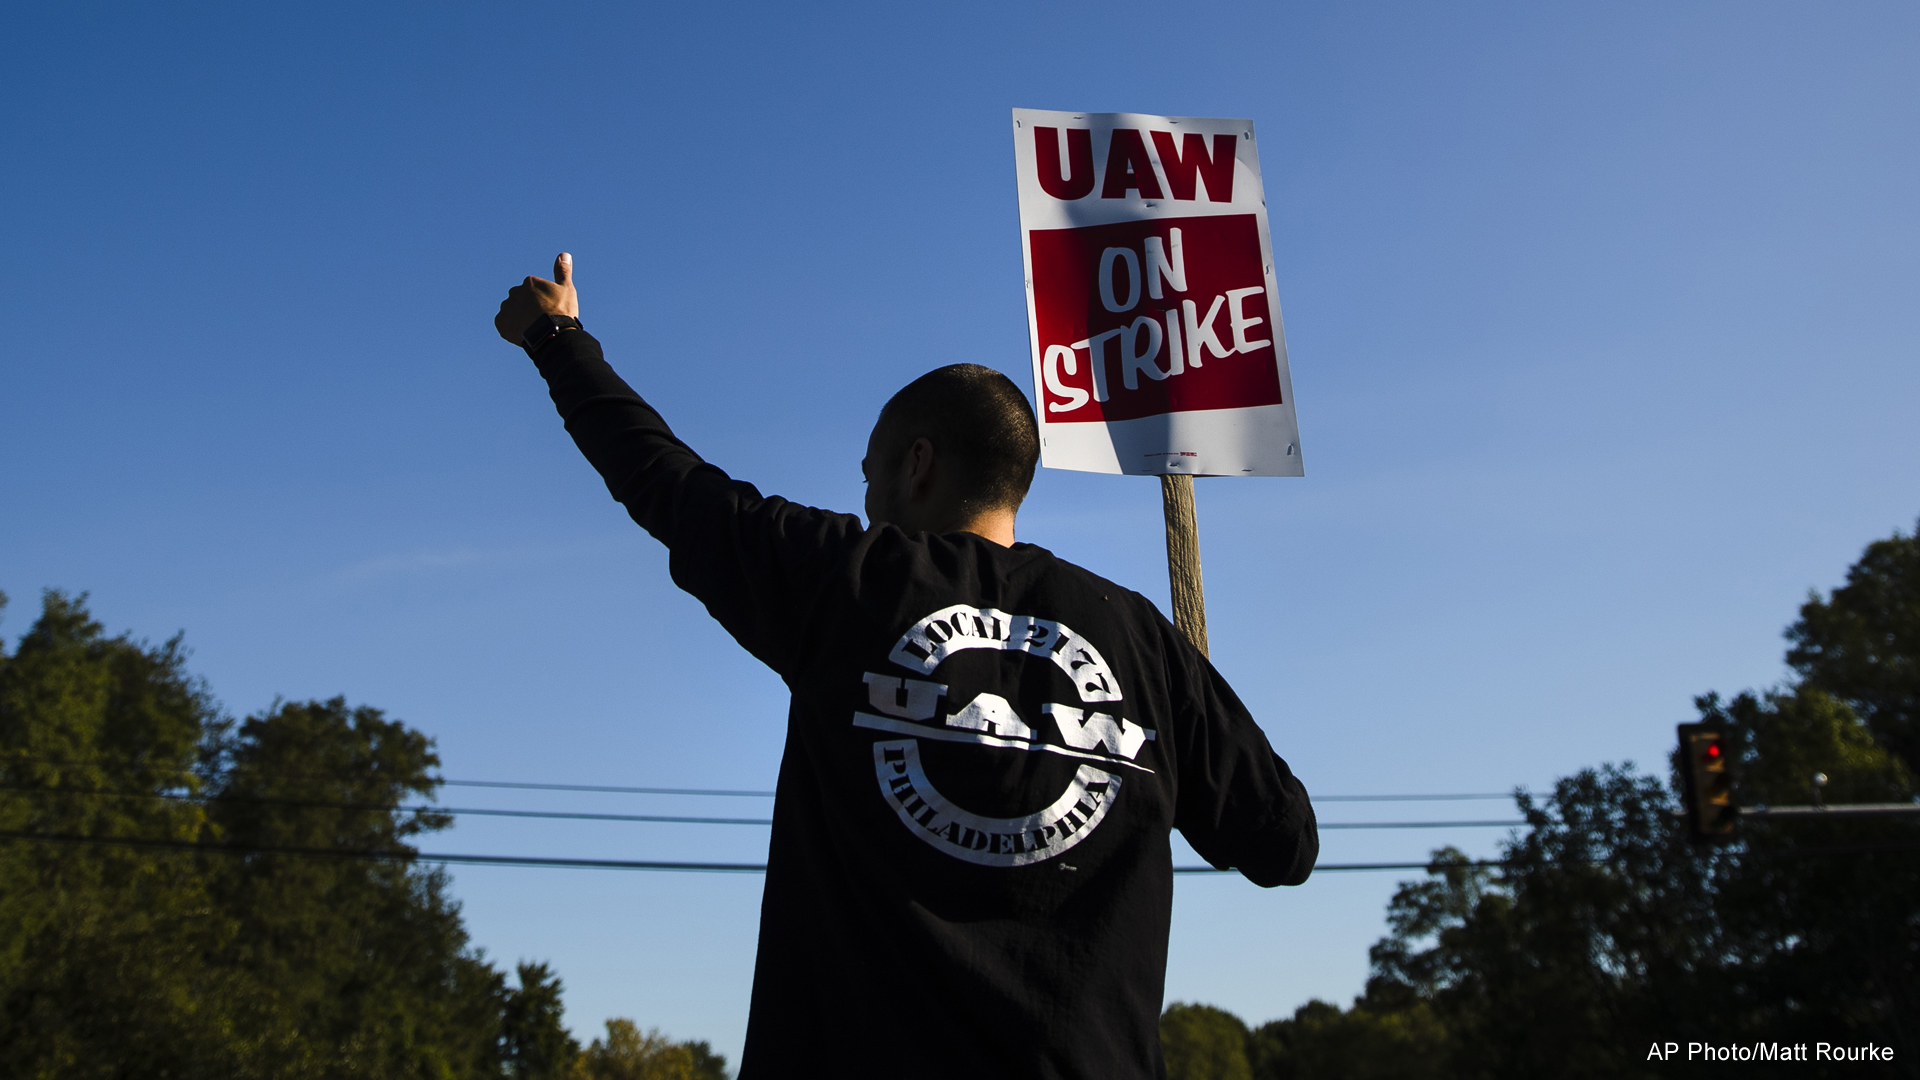 General Motors UAW Strike